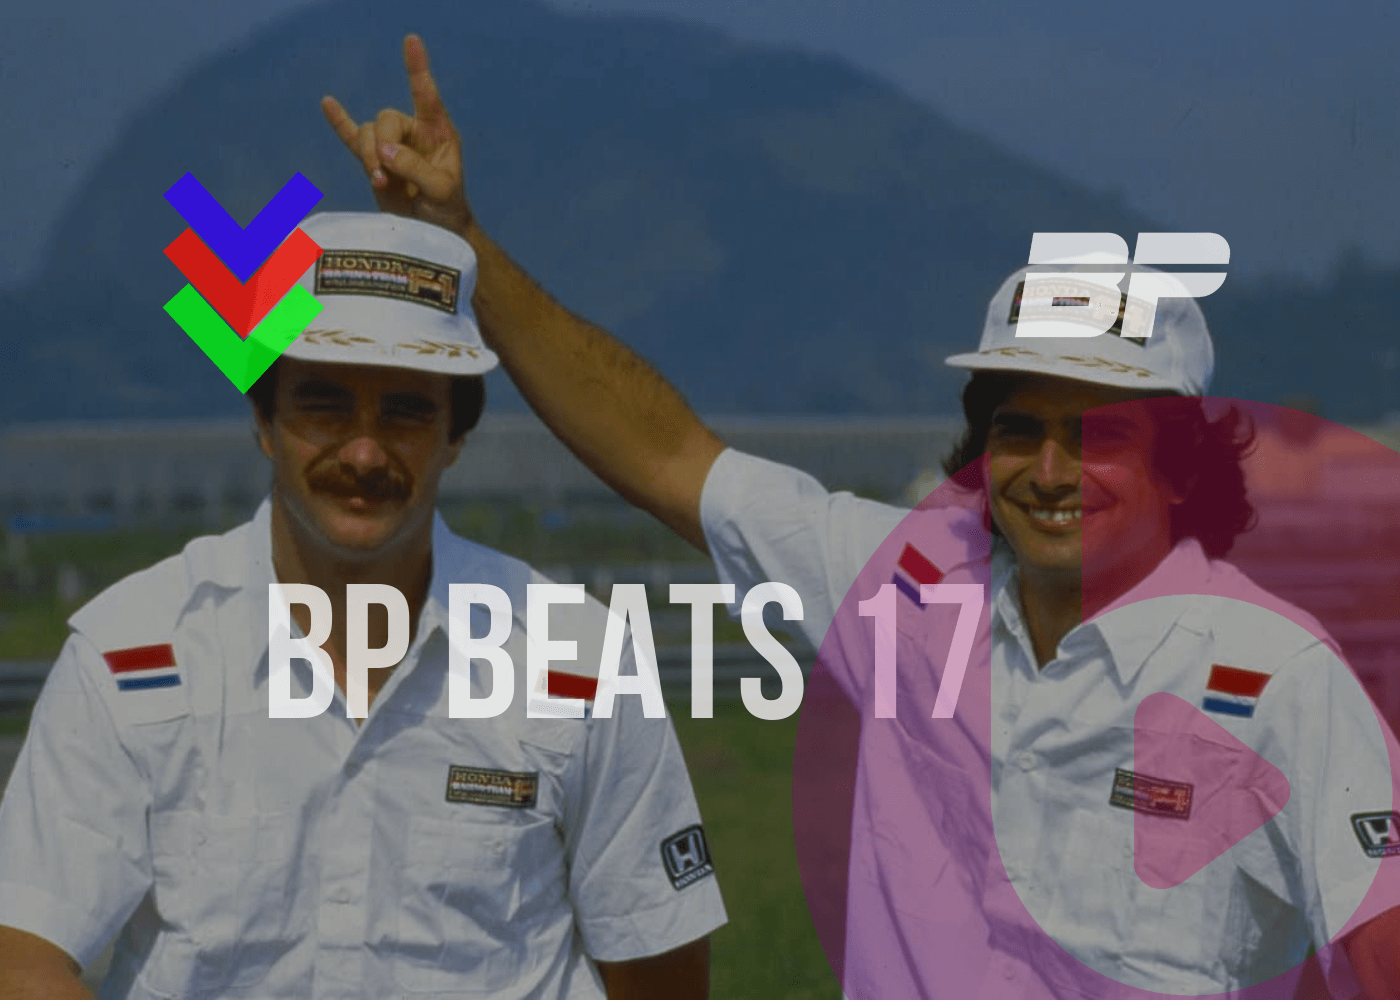 Photo of BP BEATS 17 | Amigos e Rivais